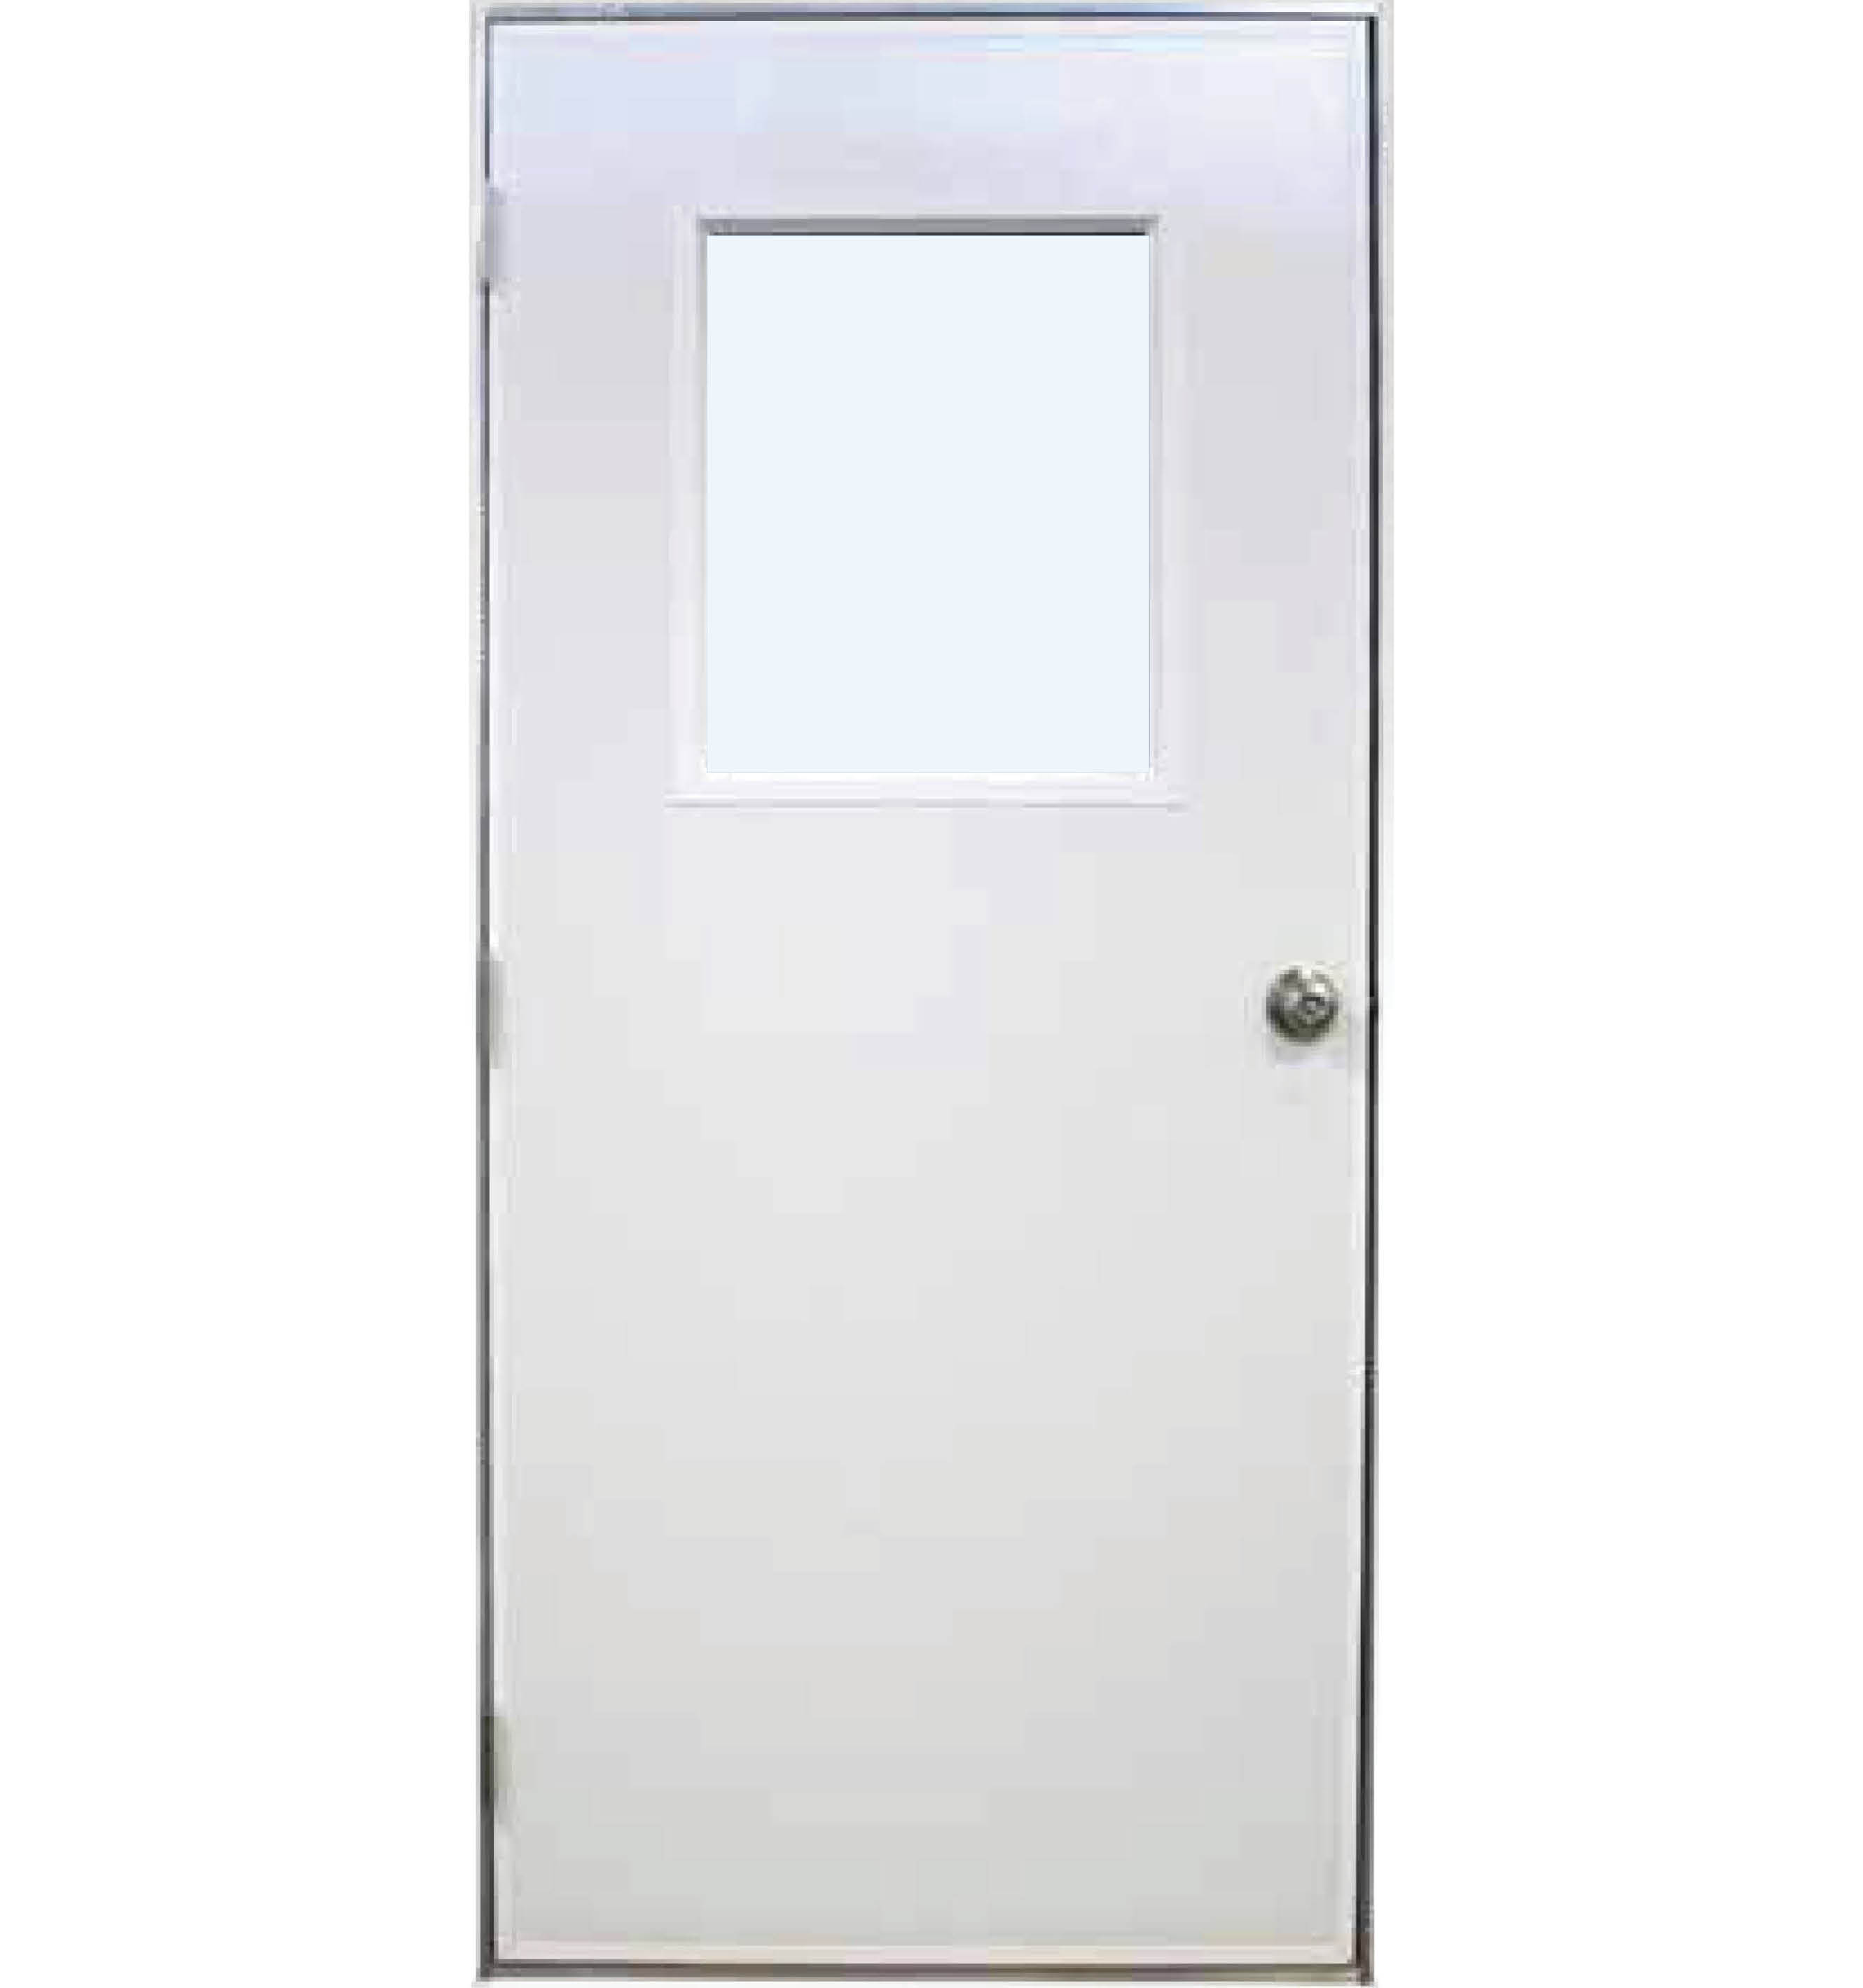 Cannonball Fiberglass Door u2013 #52 Series  sc 1 st  AB Martin Roofing Supply & Fiberglass Entry Doors | A.B. Martin Building Supplies